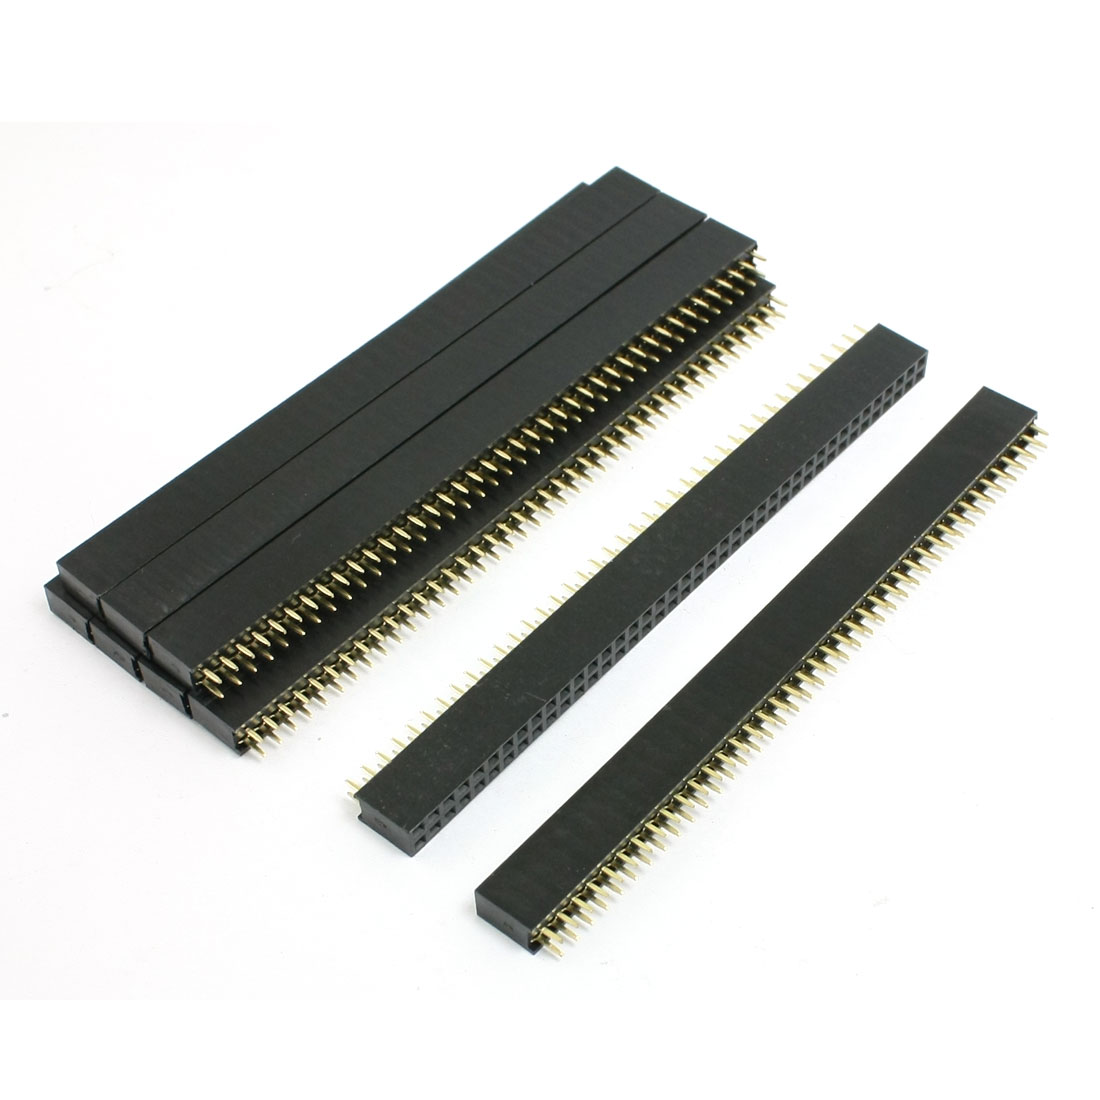 9 Pcs 2.21mm Pitch 2x40 Pin Straight Dual Rows Pin Headers for LCD TV